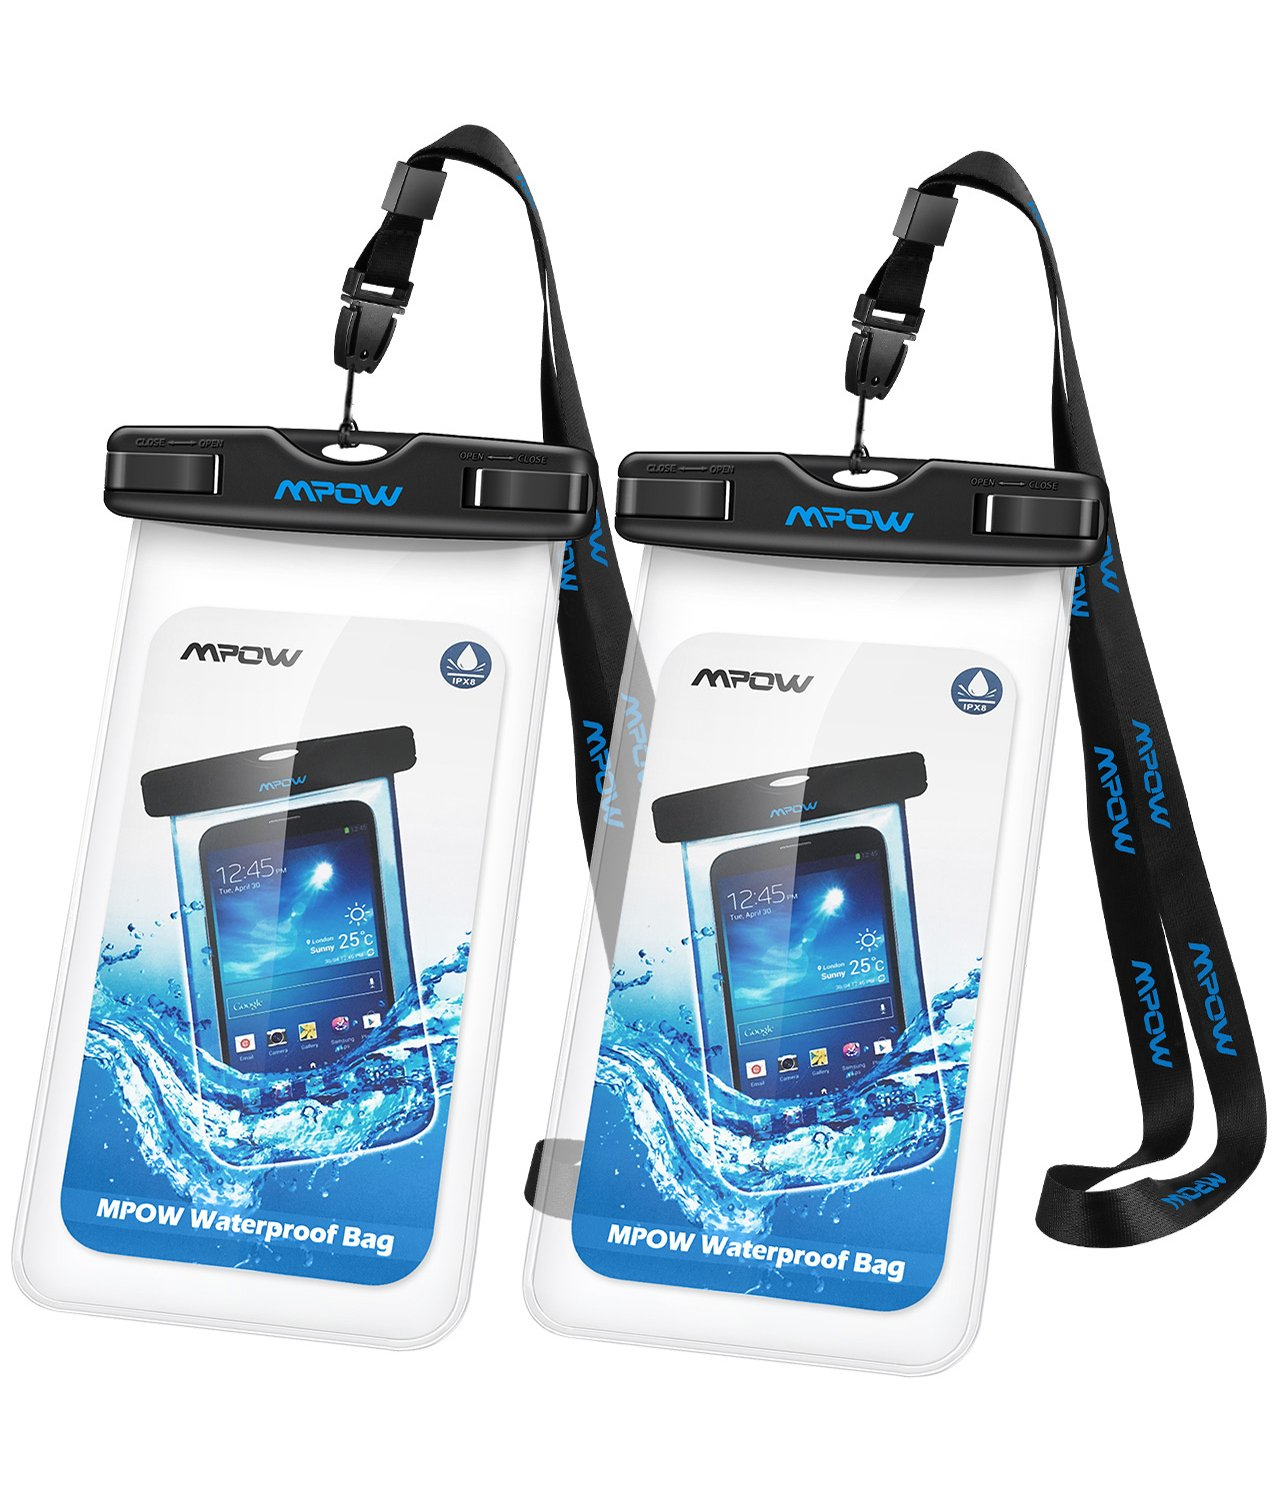 Waterproof bag for mobile or documents for a travel gift